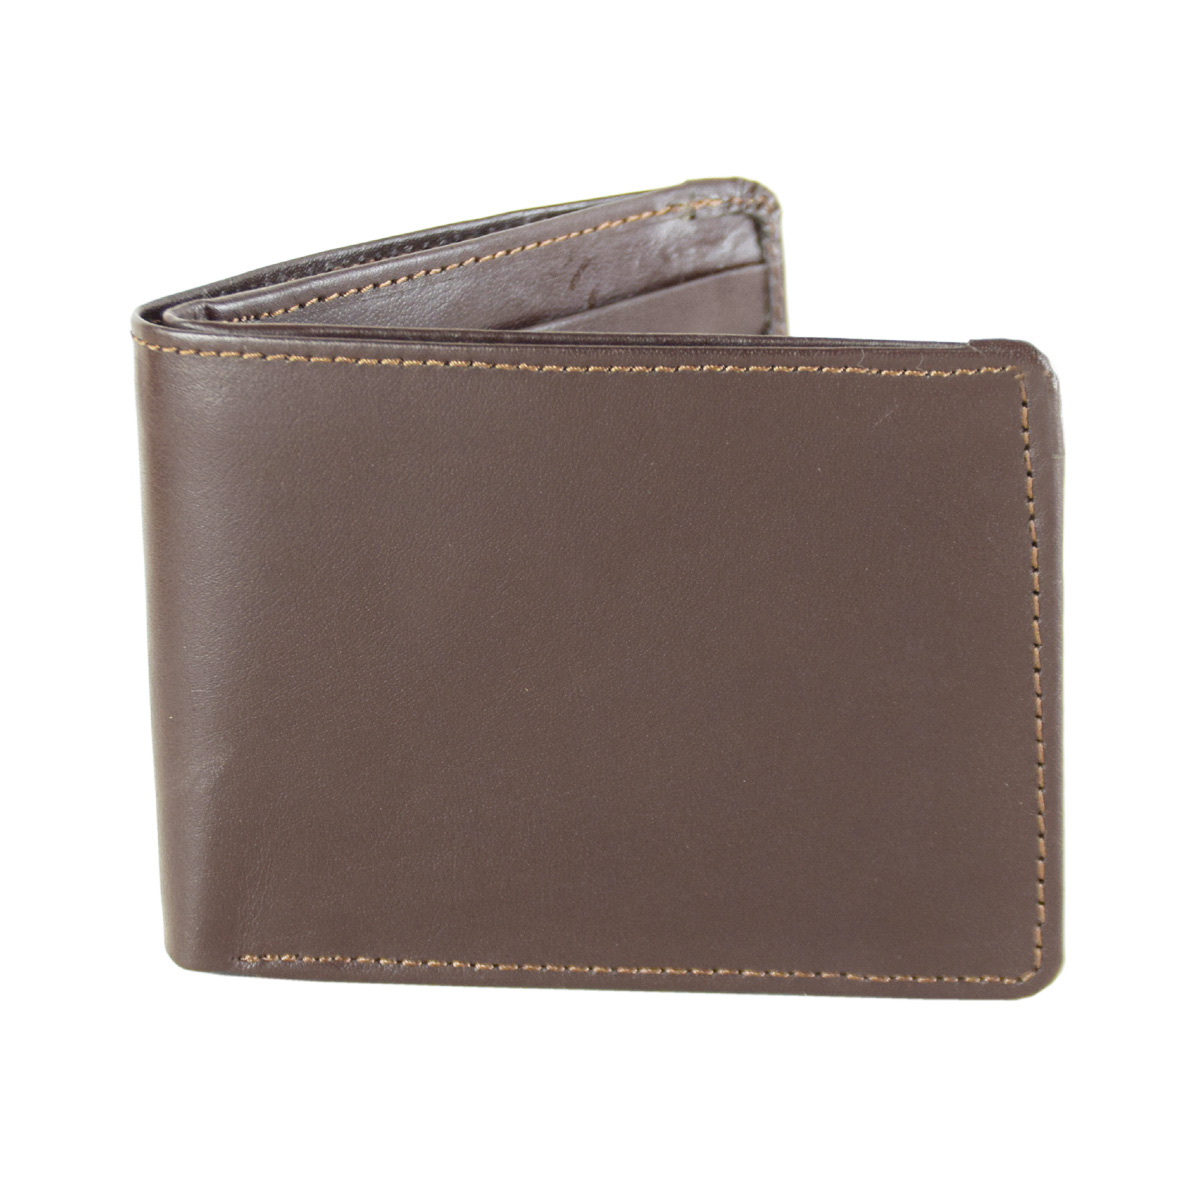 BROWN WALLET WITH FOLDABLE CARD HOLDER